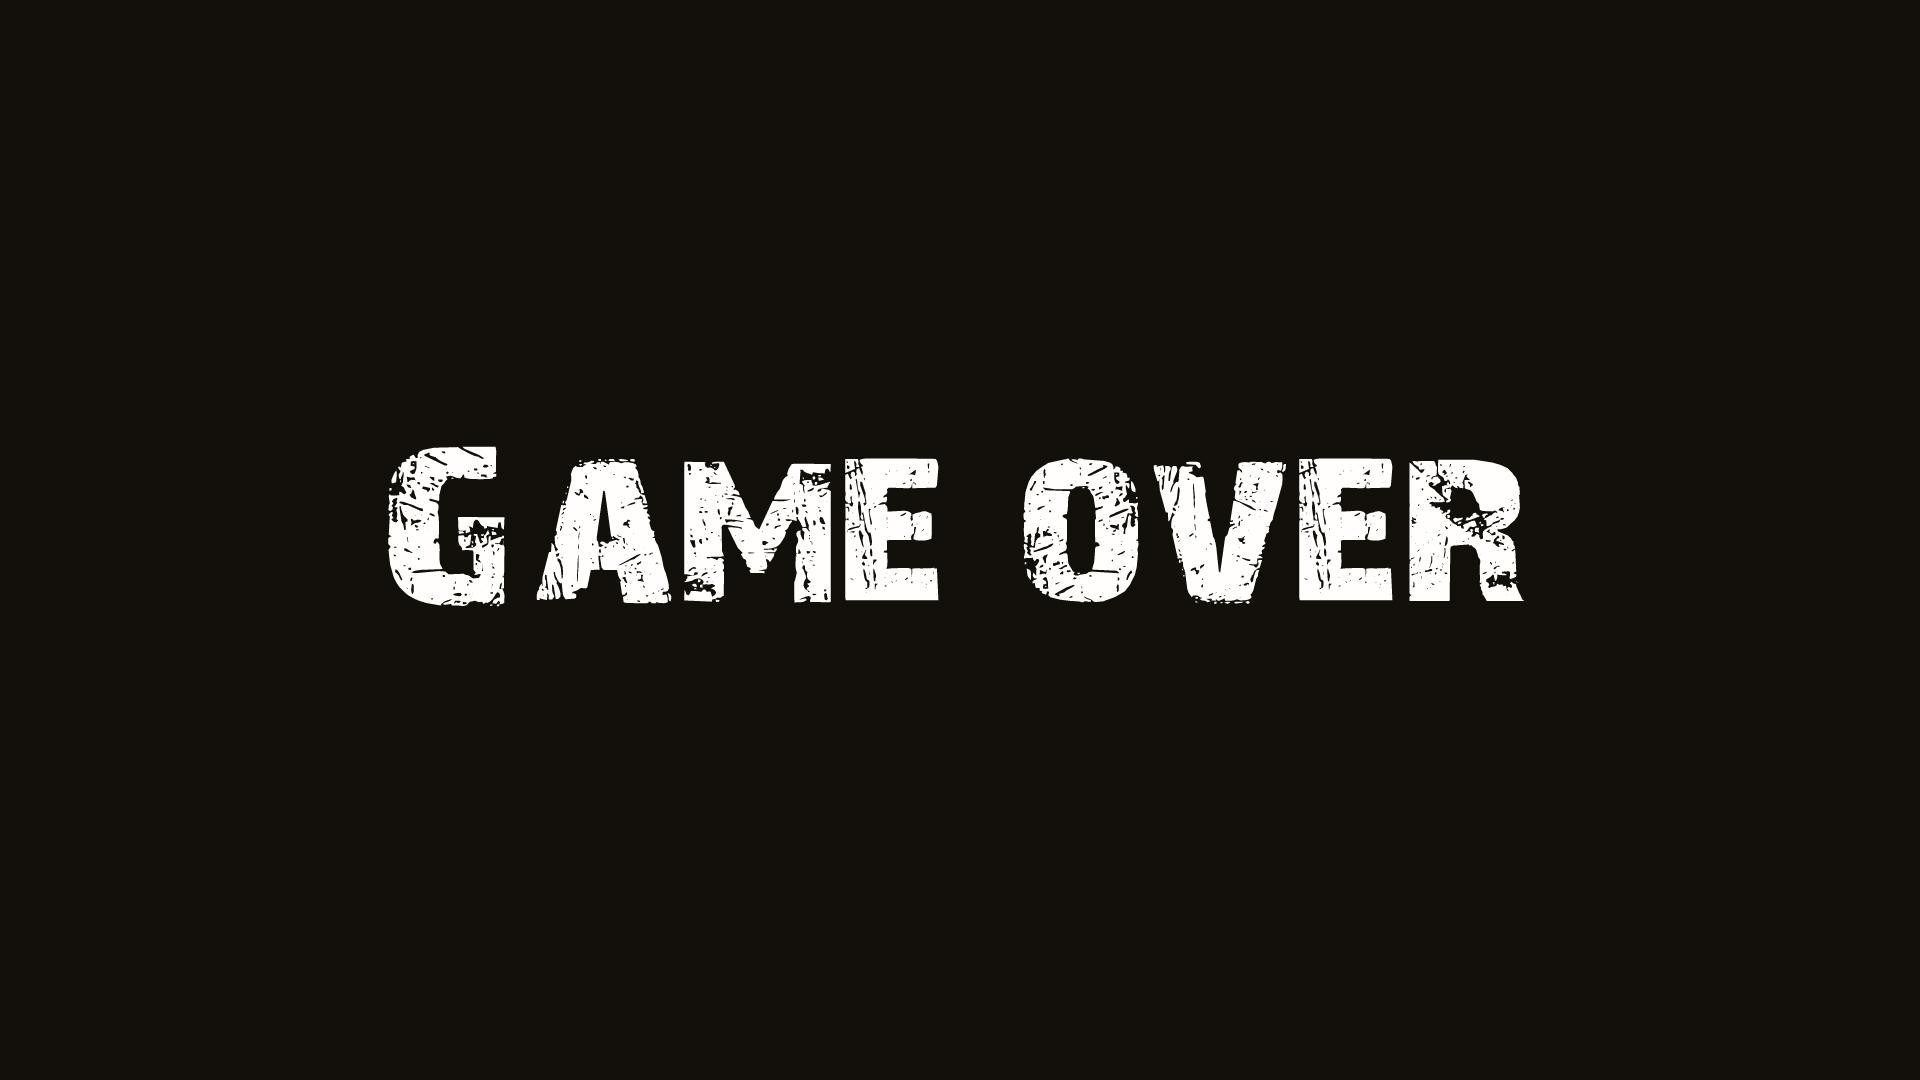 Game Over Art HD Wallpaper | Cool Wallpapers Twitter Backgrounds For Gamers